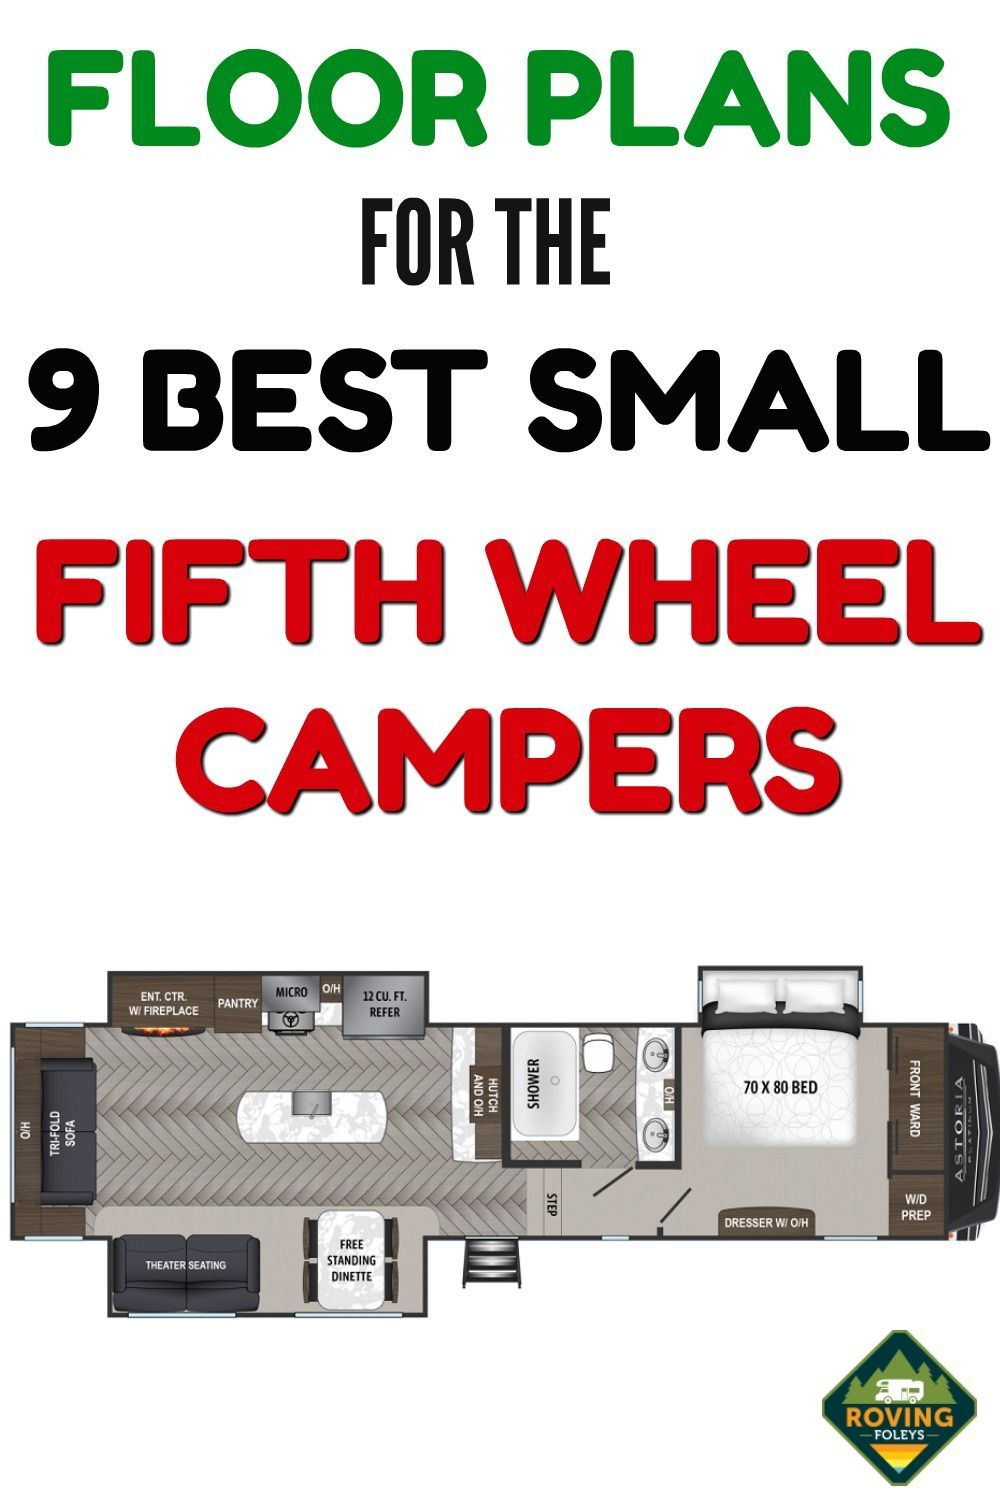 Travel Tips and Family Adventure in 2020 Fifth wheel